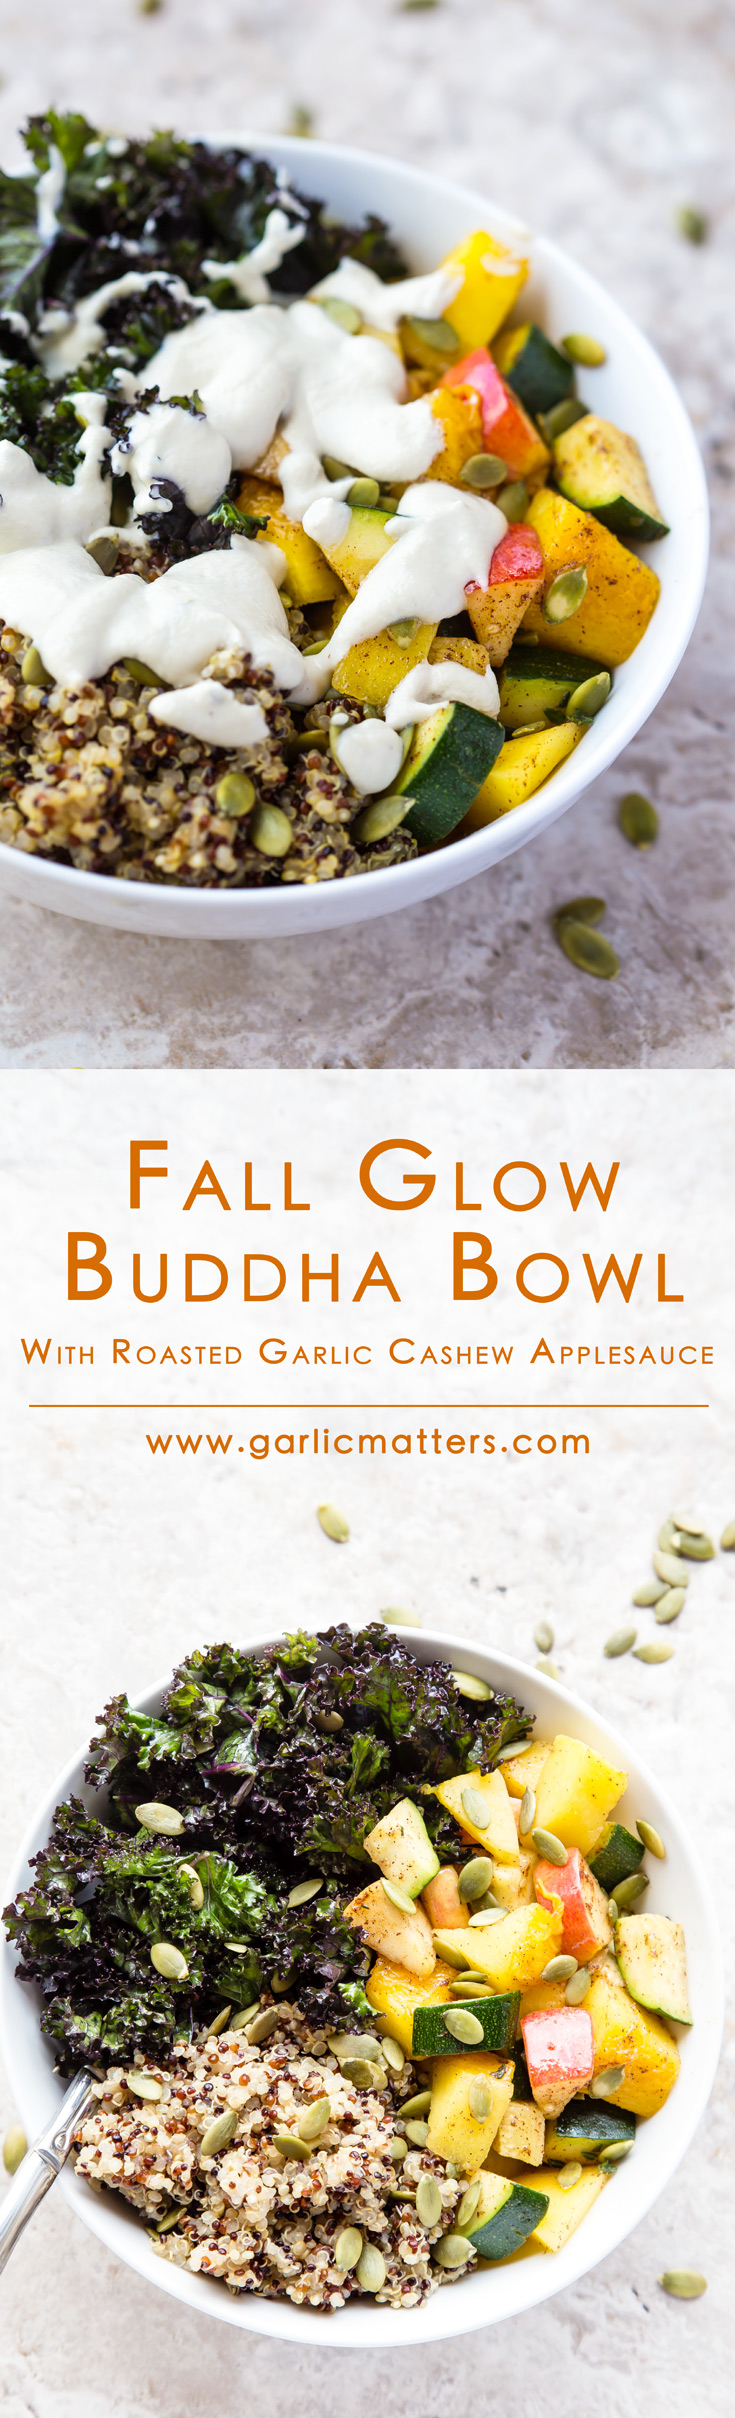 Nourishing Fall Glow Buddha Bowl with Garlic Cashew Sauce is a definition of vegan goodness. It comes with an amazing, creamy, roasted garlic cashew applesauce you can also use as a dip or to pour over simple garlic butter pasta. Healthy, gluten free, plant based, 1h recipe for lunch or dinner. Even kids love it!